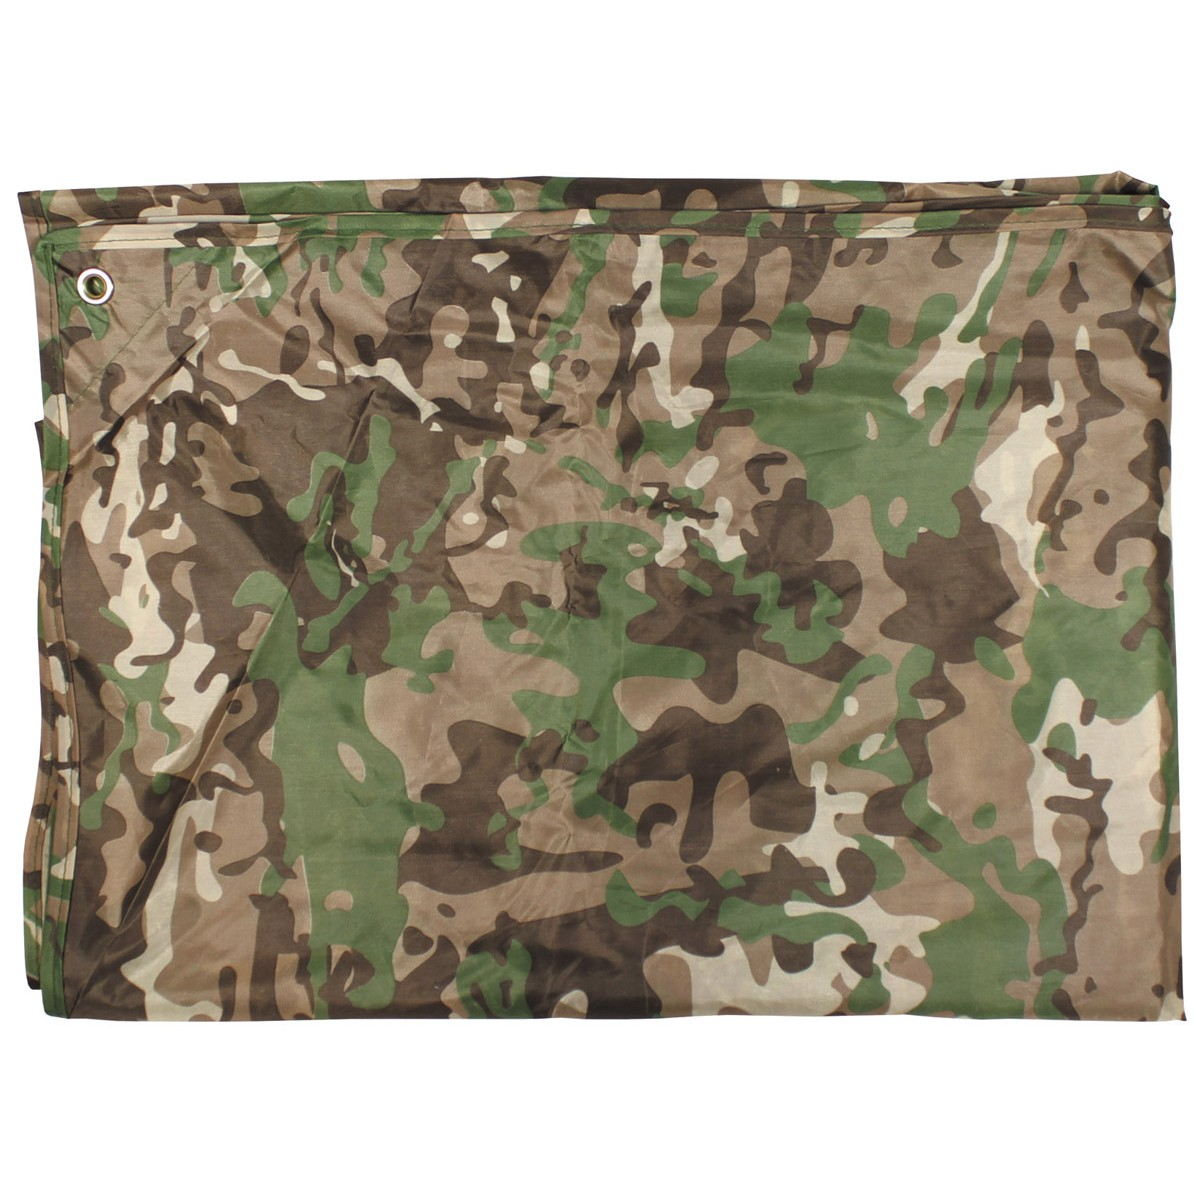 Military Operation Camouflage Tarpaulin - 2x3m